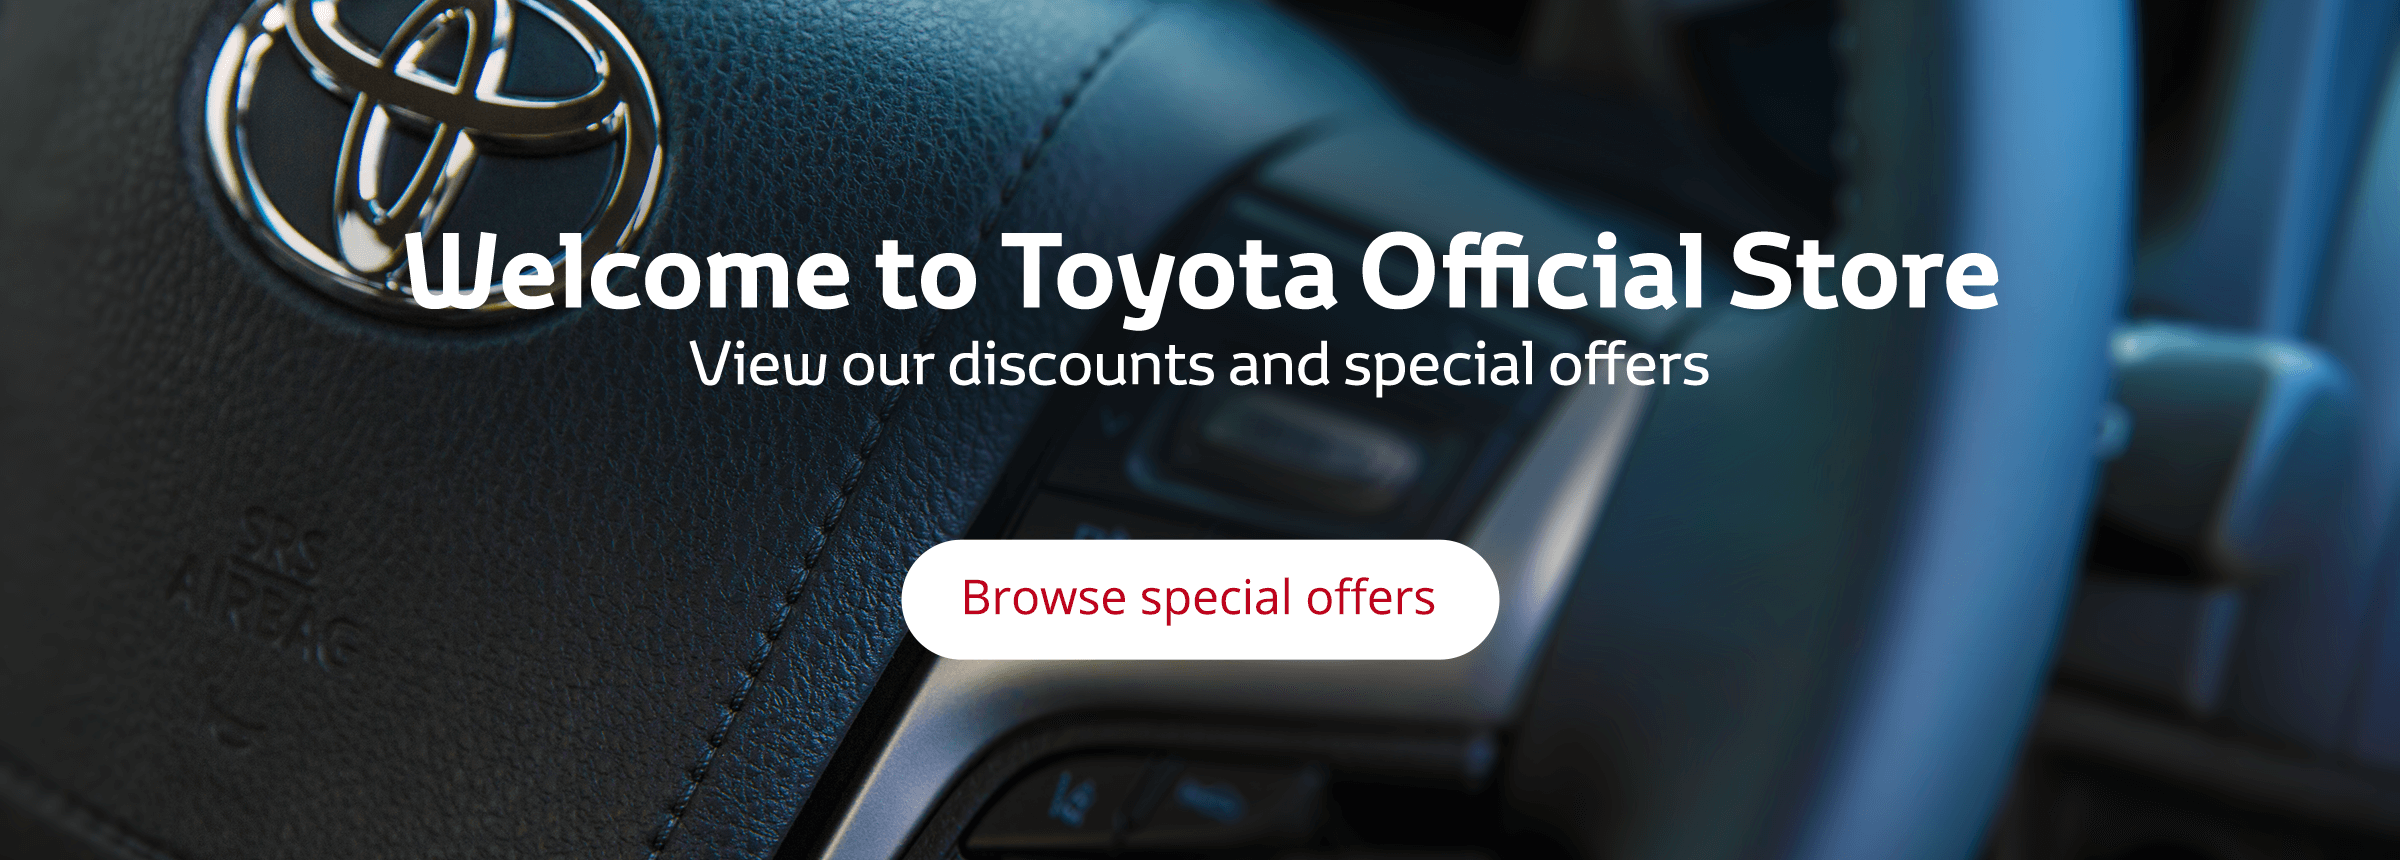 4d04d41dc70 Welcome to Toyota Official Store ...